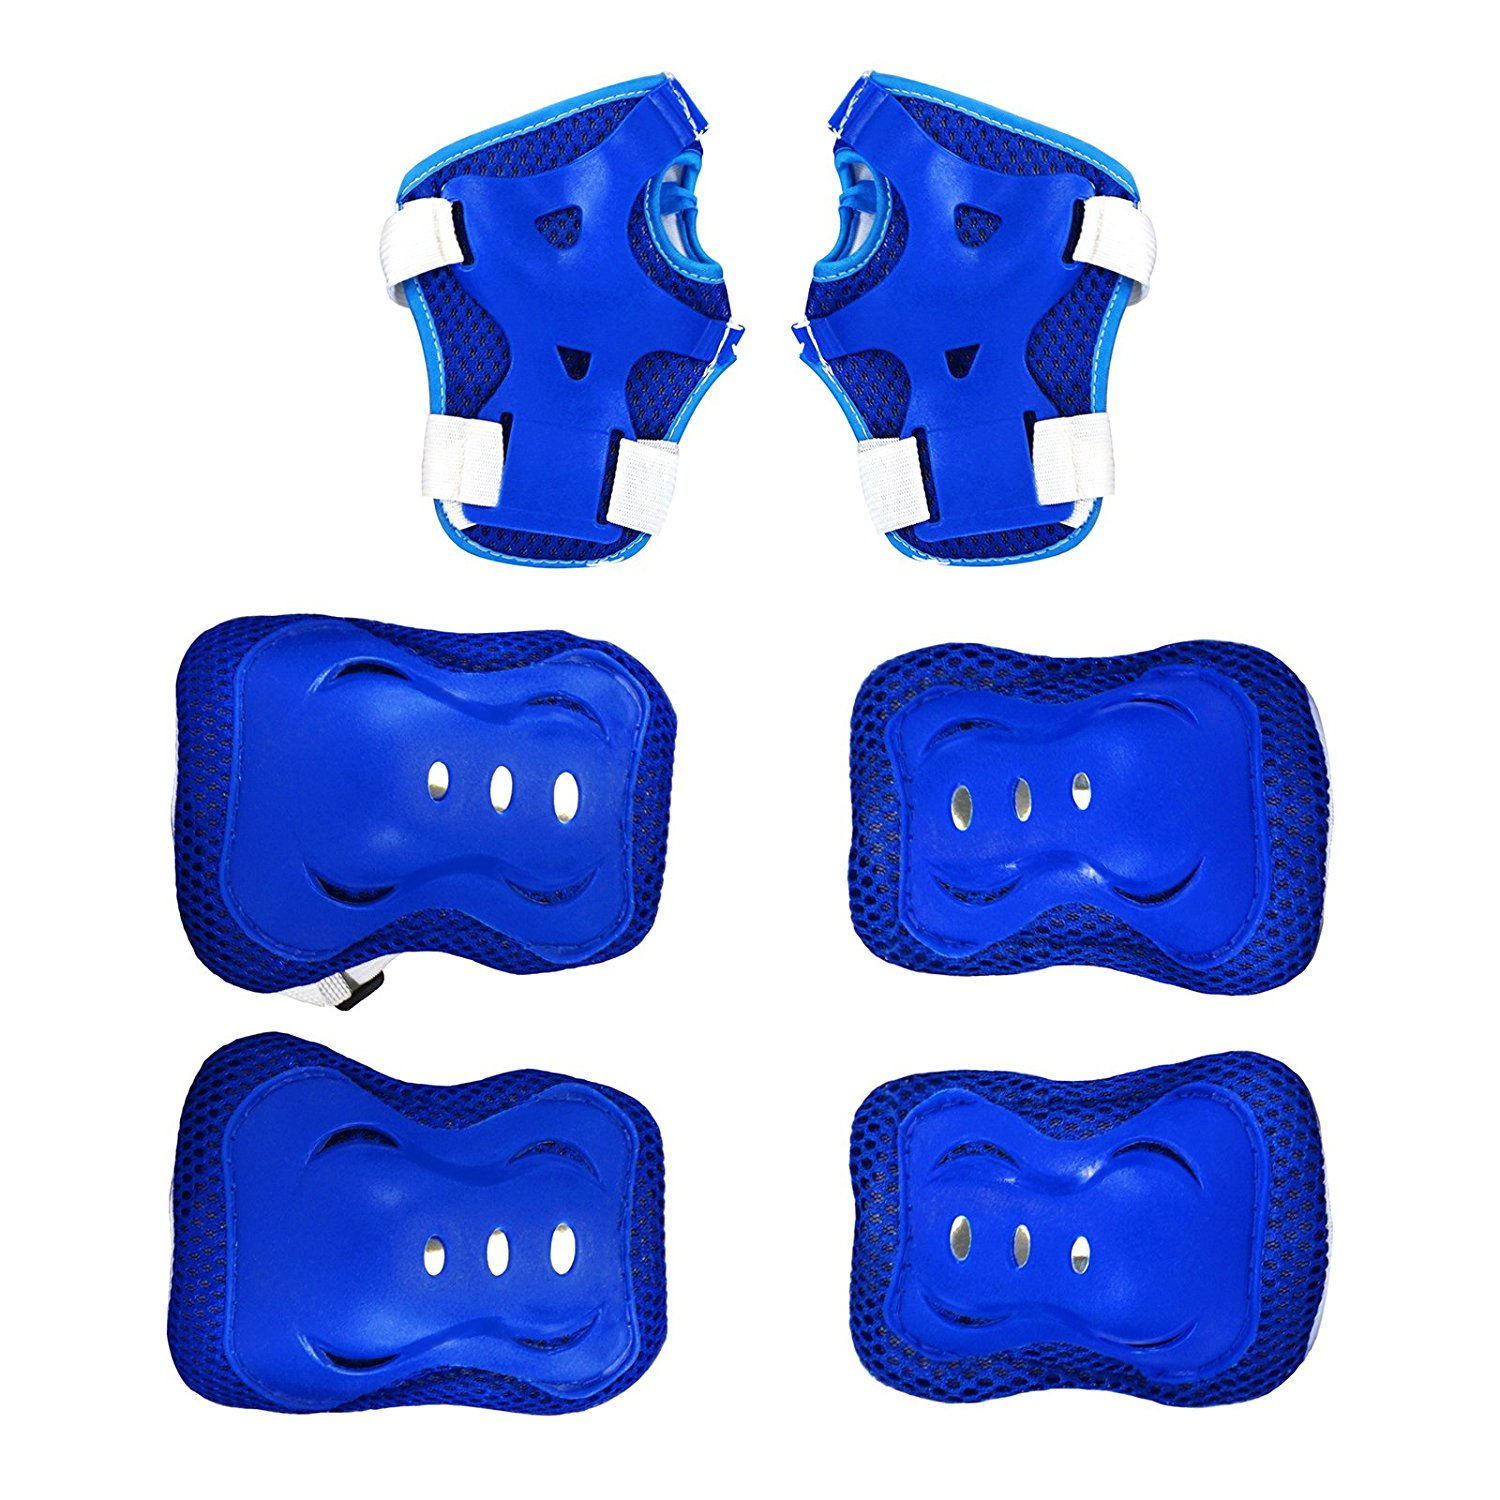 Kids Protective Gear Set Knee Pads Elbow Pads Wrist Guards For Skateboarding Roller Skates Cycling Rollerblade BMX Bike... by